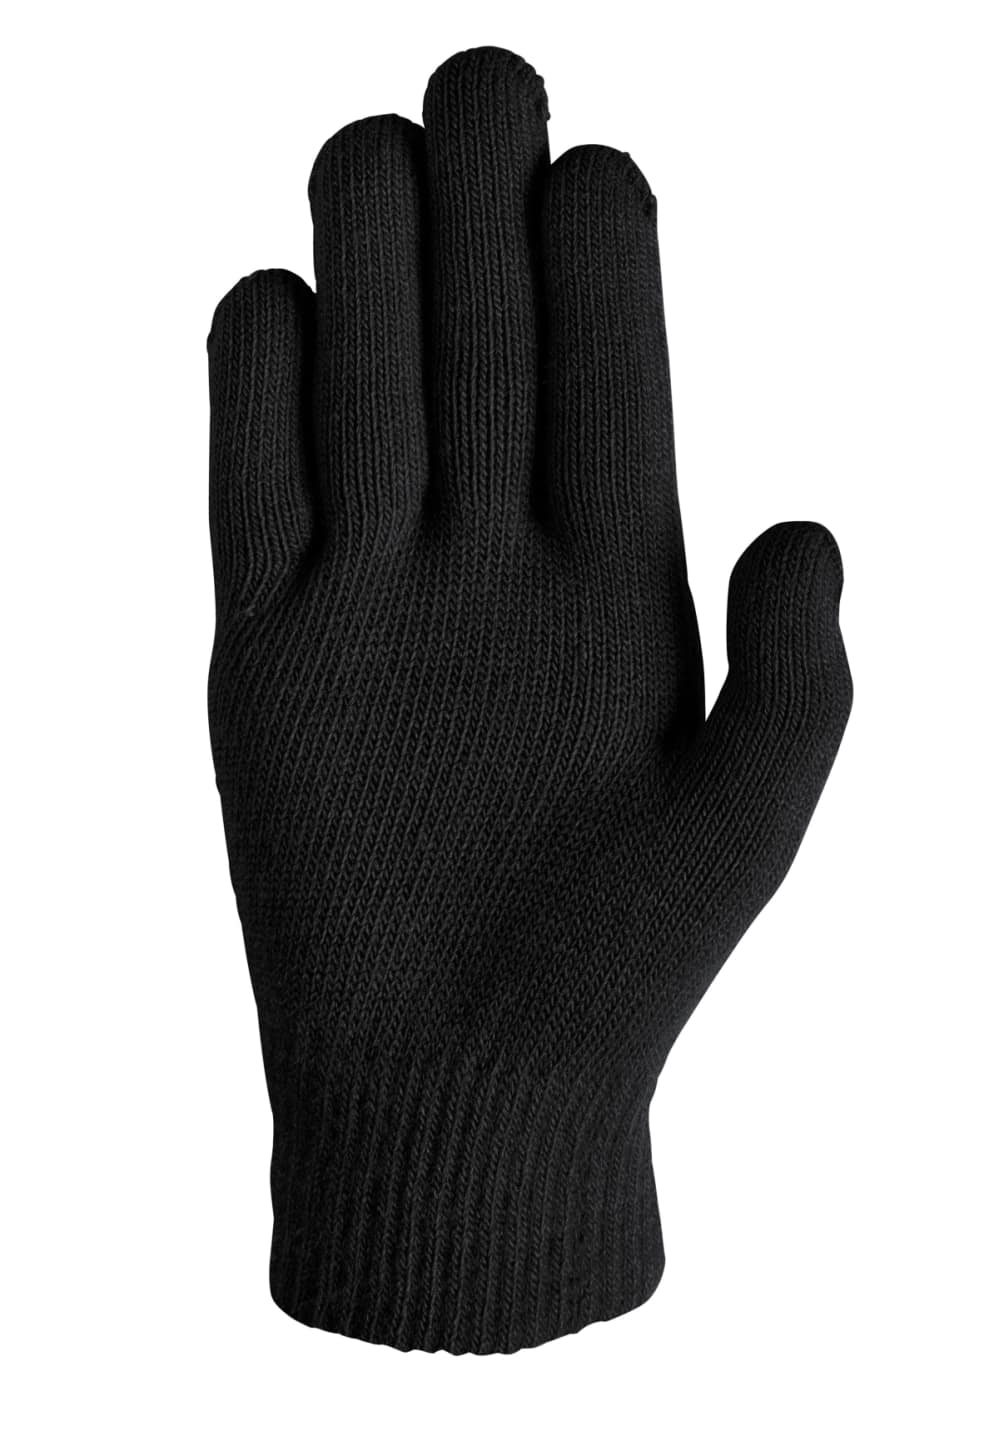 Nike Ya Swoosh Knit Gloves Running Black 21run 9c3c904756c